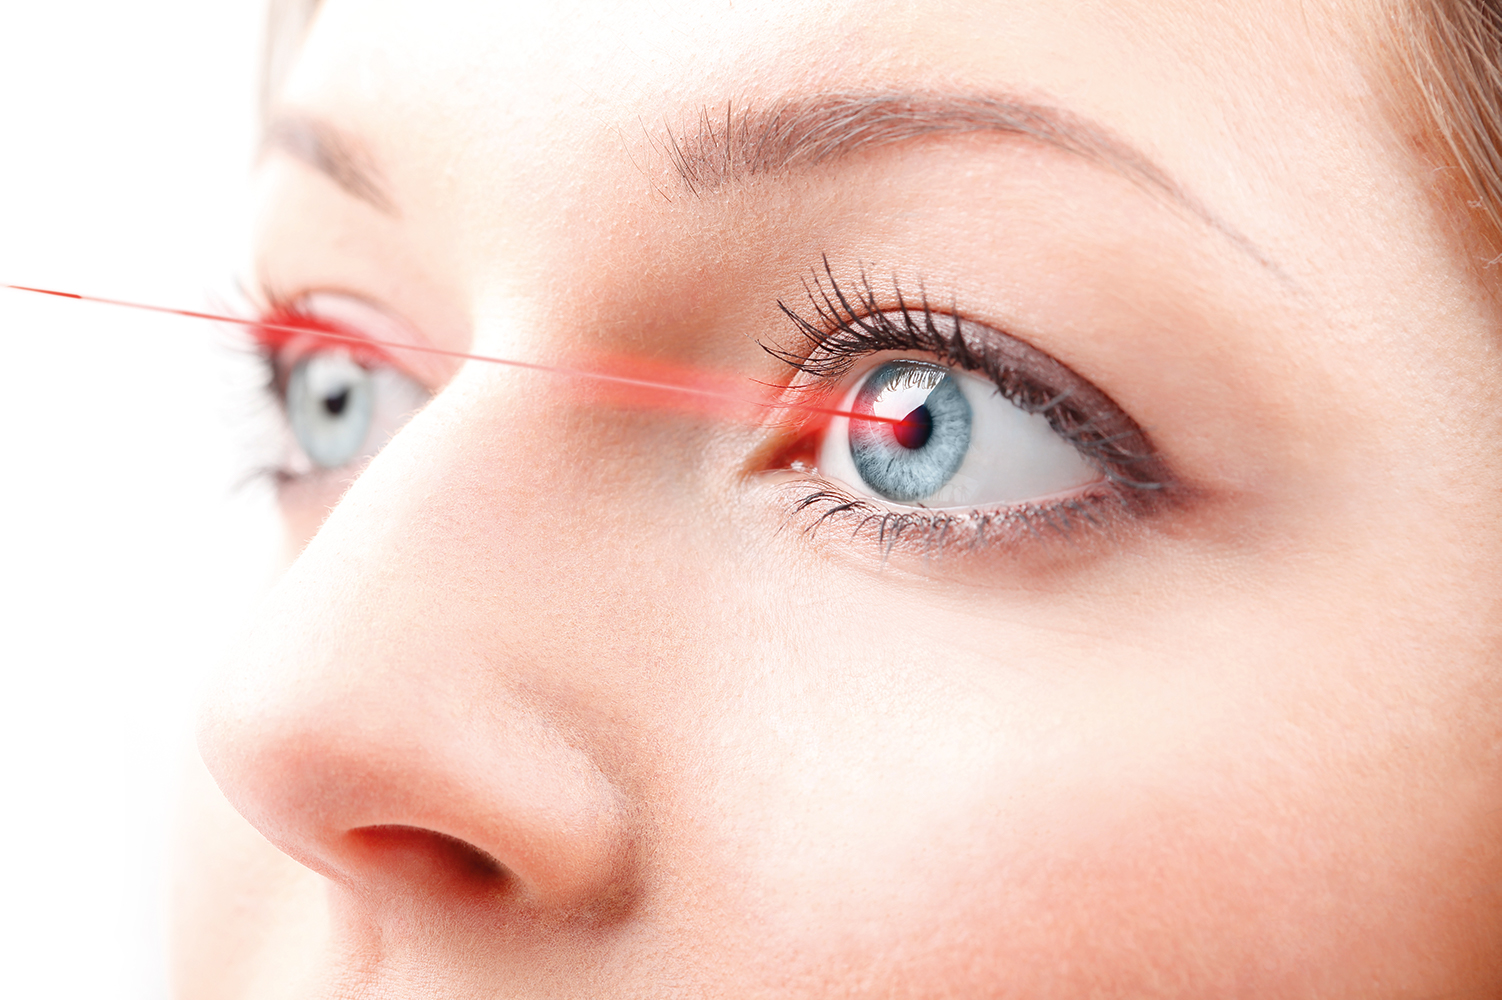 Application-Laser-eye-treatment-iStock